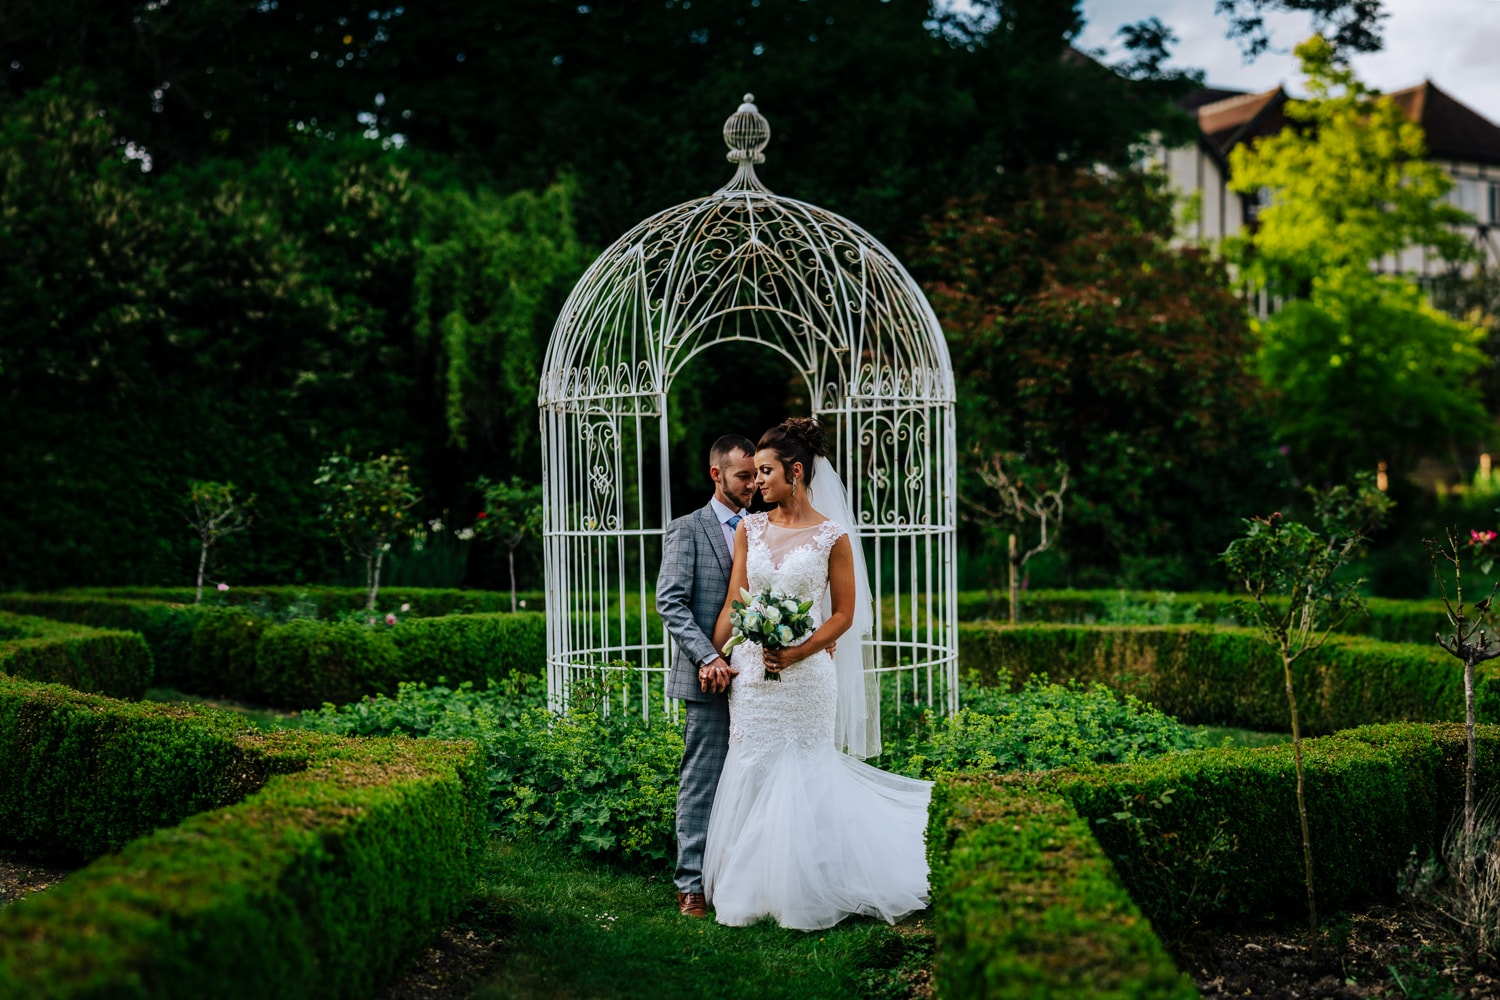 epic photo of gorgeous bride and groom at Ravenswood Wedding Venue